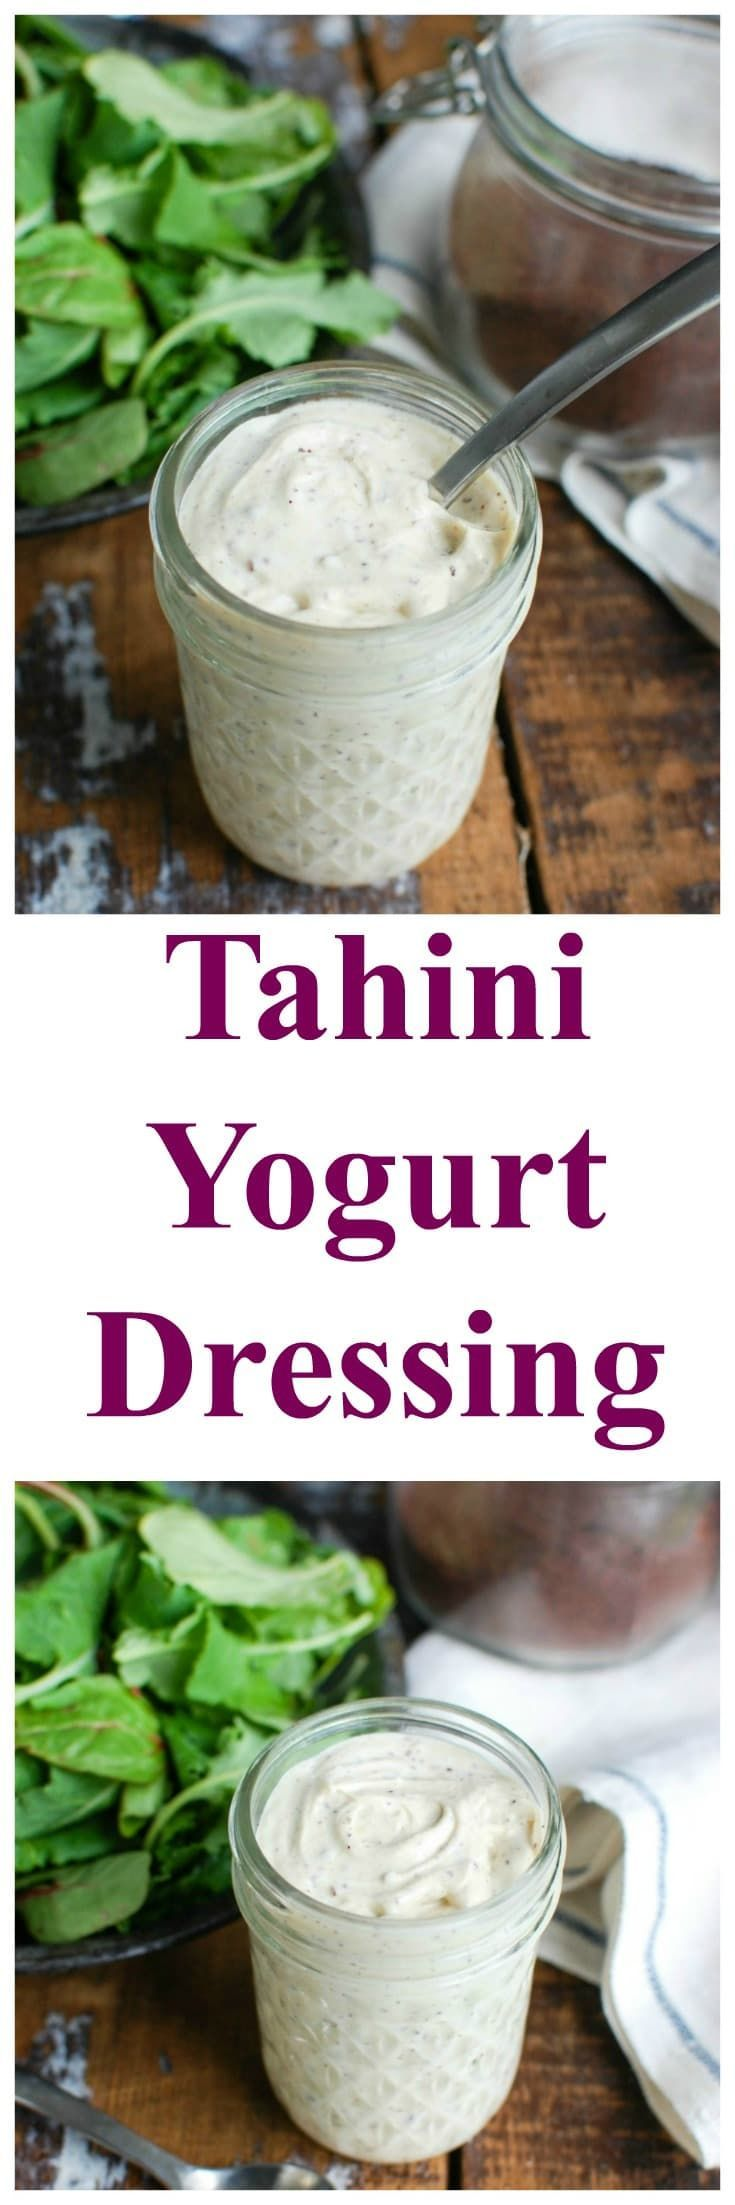 Tahini Yogurt Dressing is a light dressing that is a nice addition to salads, grilled vegetables and meats and drizzled on potatoes. Tahini, yogurt, lemon juice, olive oil, garlic and sumac are mixed to create the perfect sweet, tangy dressing. // A Cedar Spoon